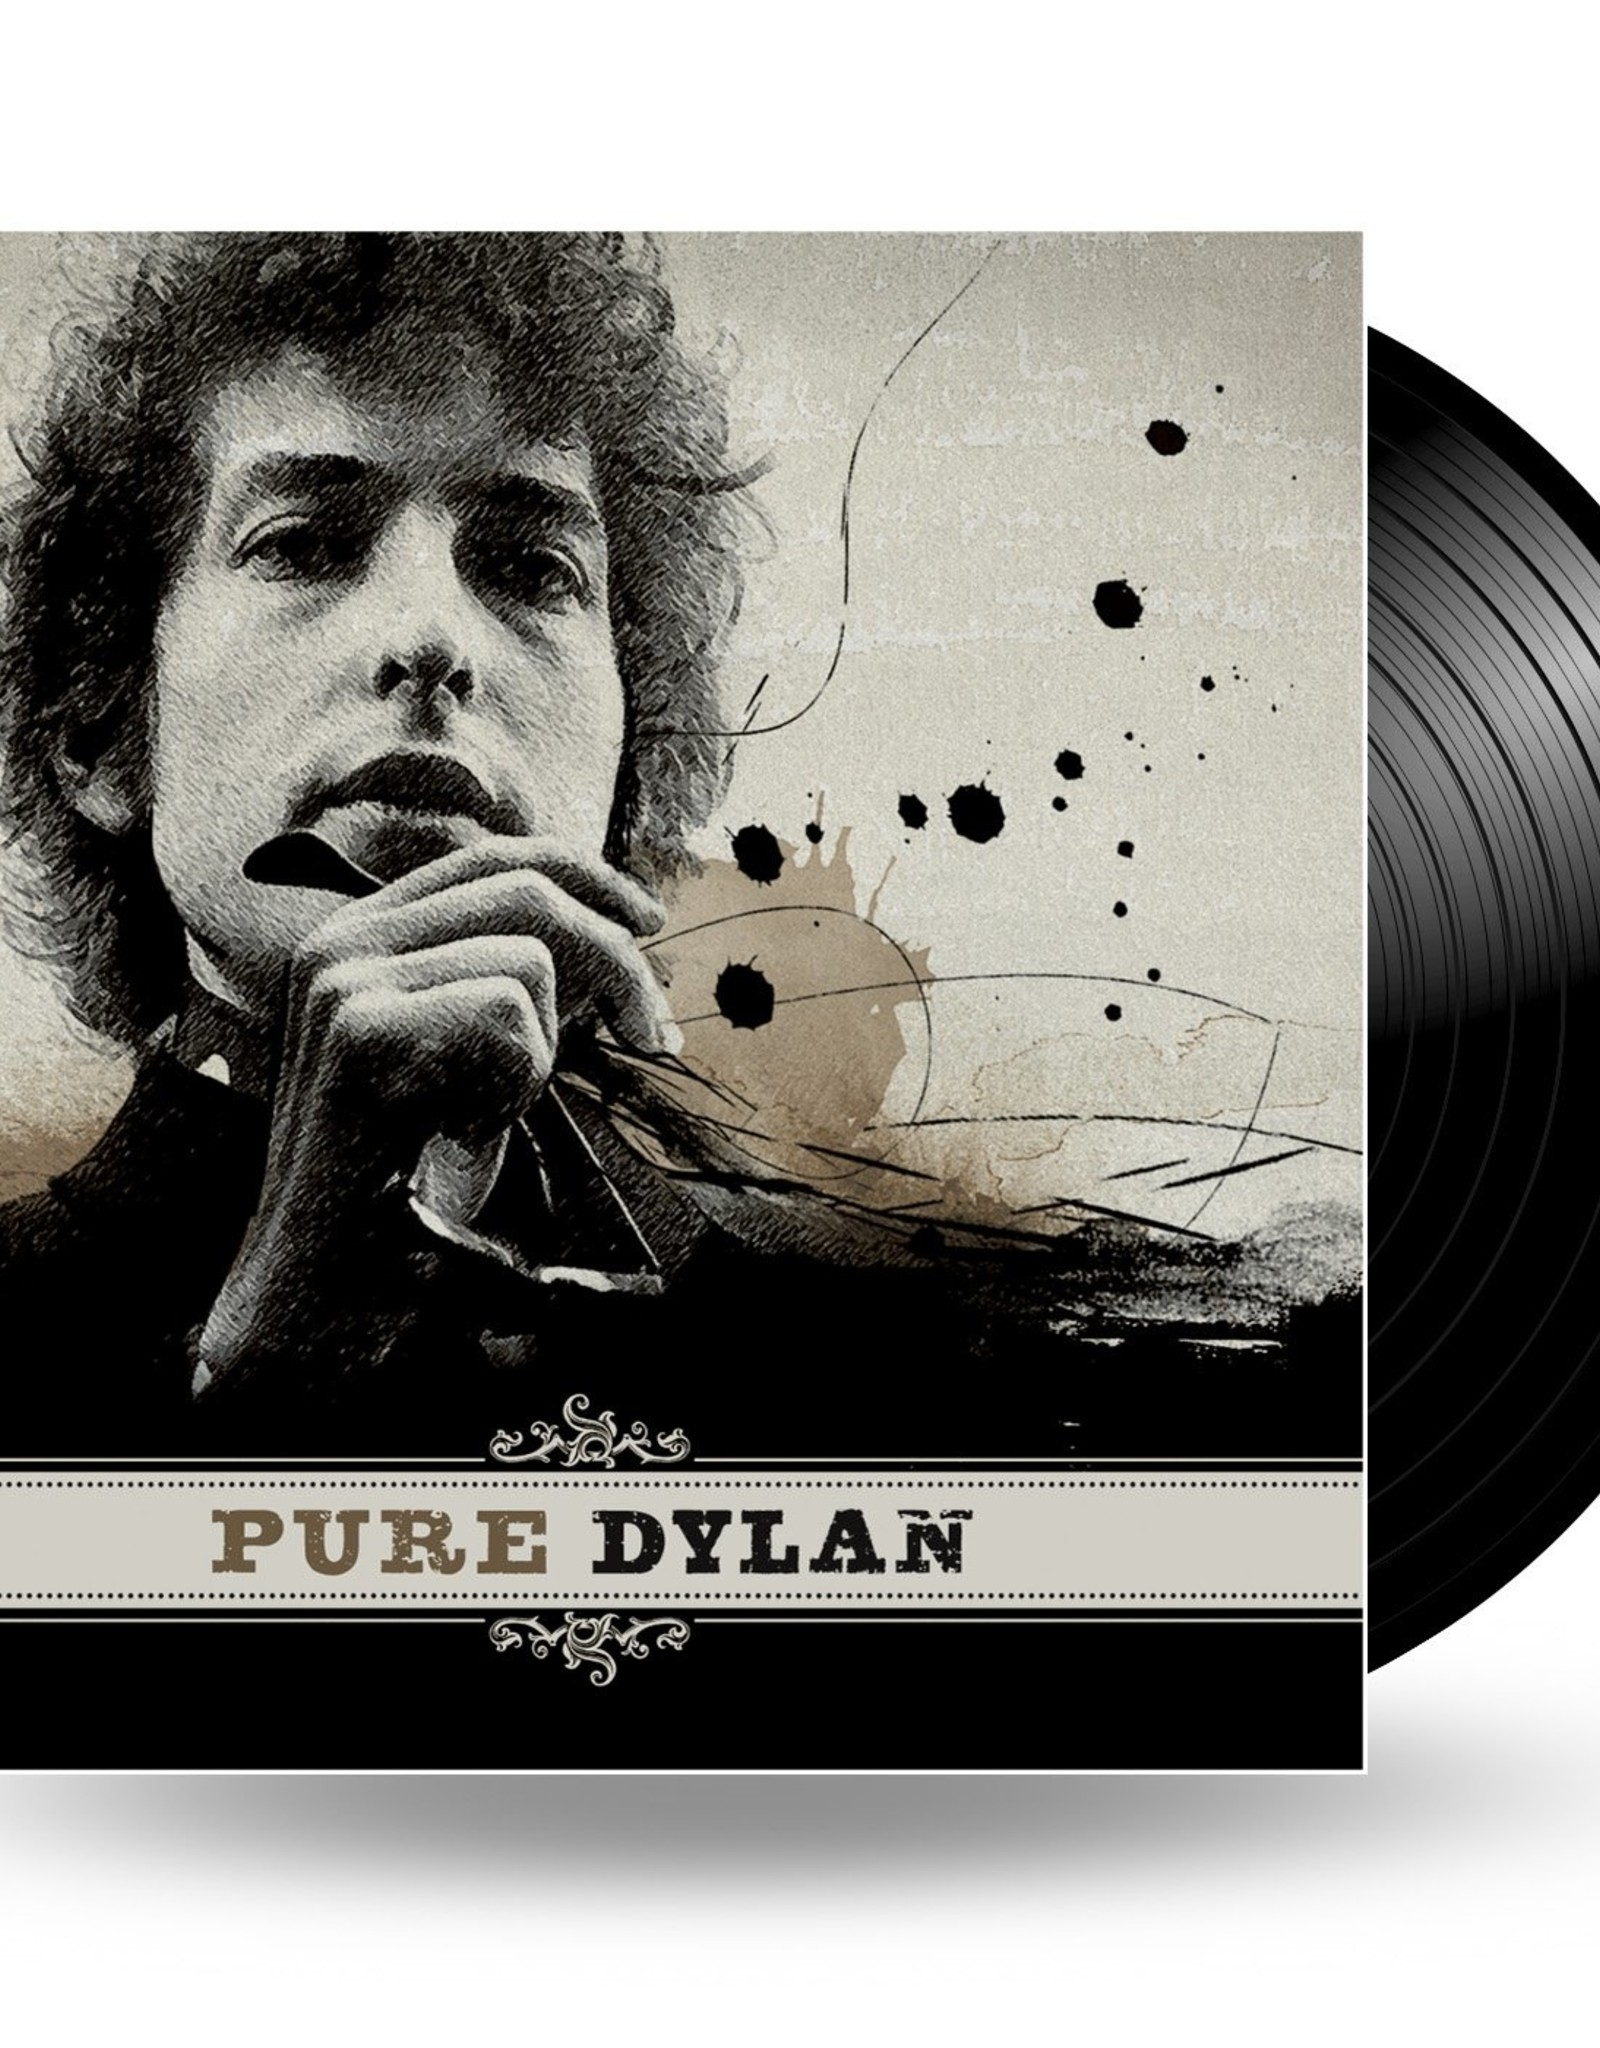 Bob Dylan - Pure Dylan - An Intimate Look At Bob Dylan